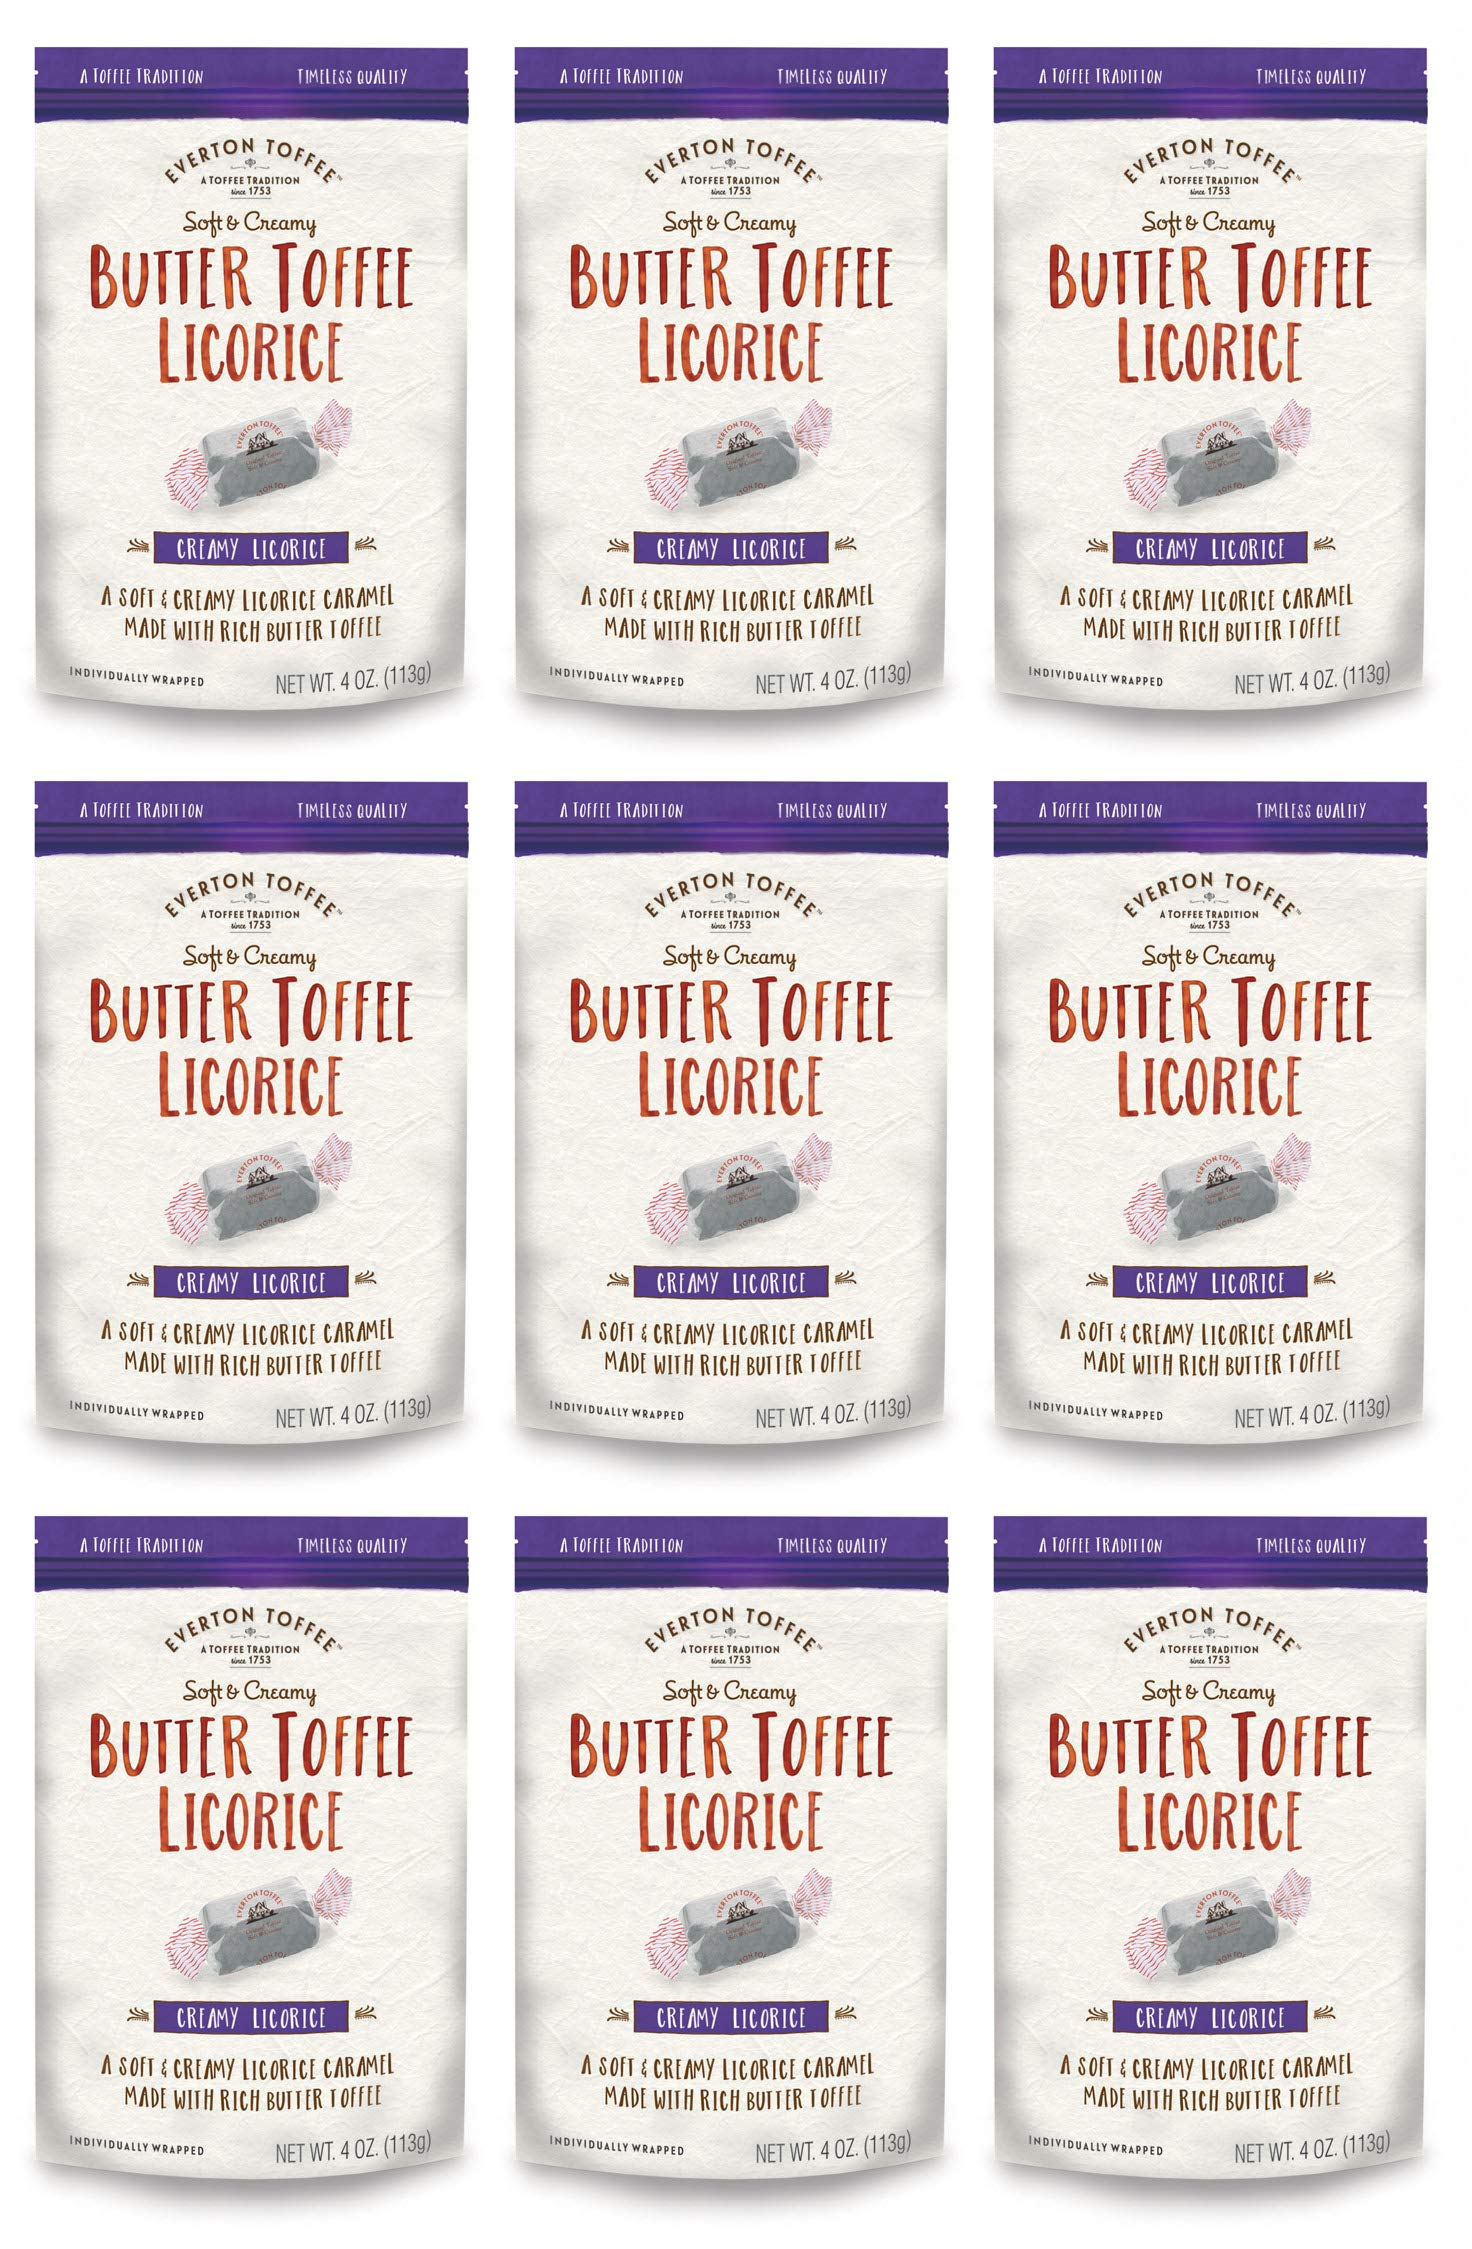 Everton Toffee Butter Toffee Caramels, Licorice Flavor (4 oz. bag, 9-pack). Gourmet, Artisan Soft and Creamy Toffee Caramels, Small Batch Crafted Carmel Candy Treats by Everton Toffee